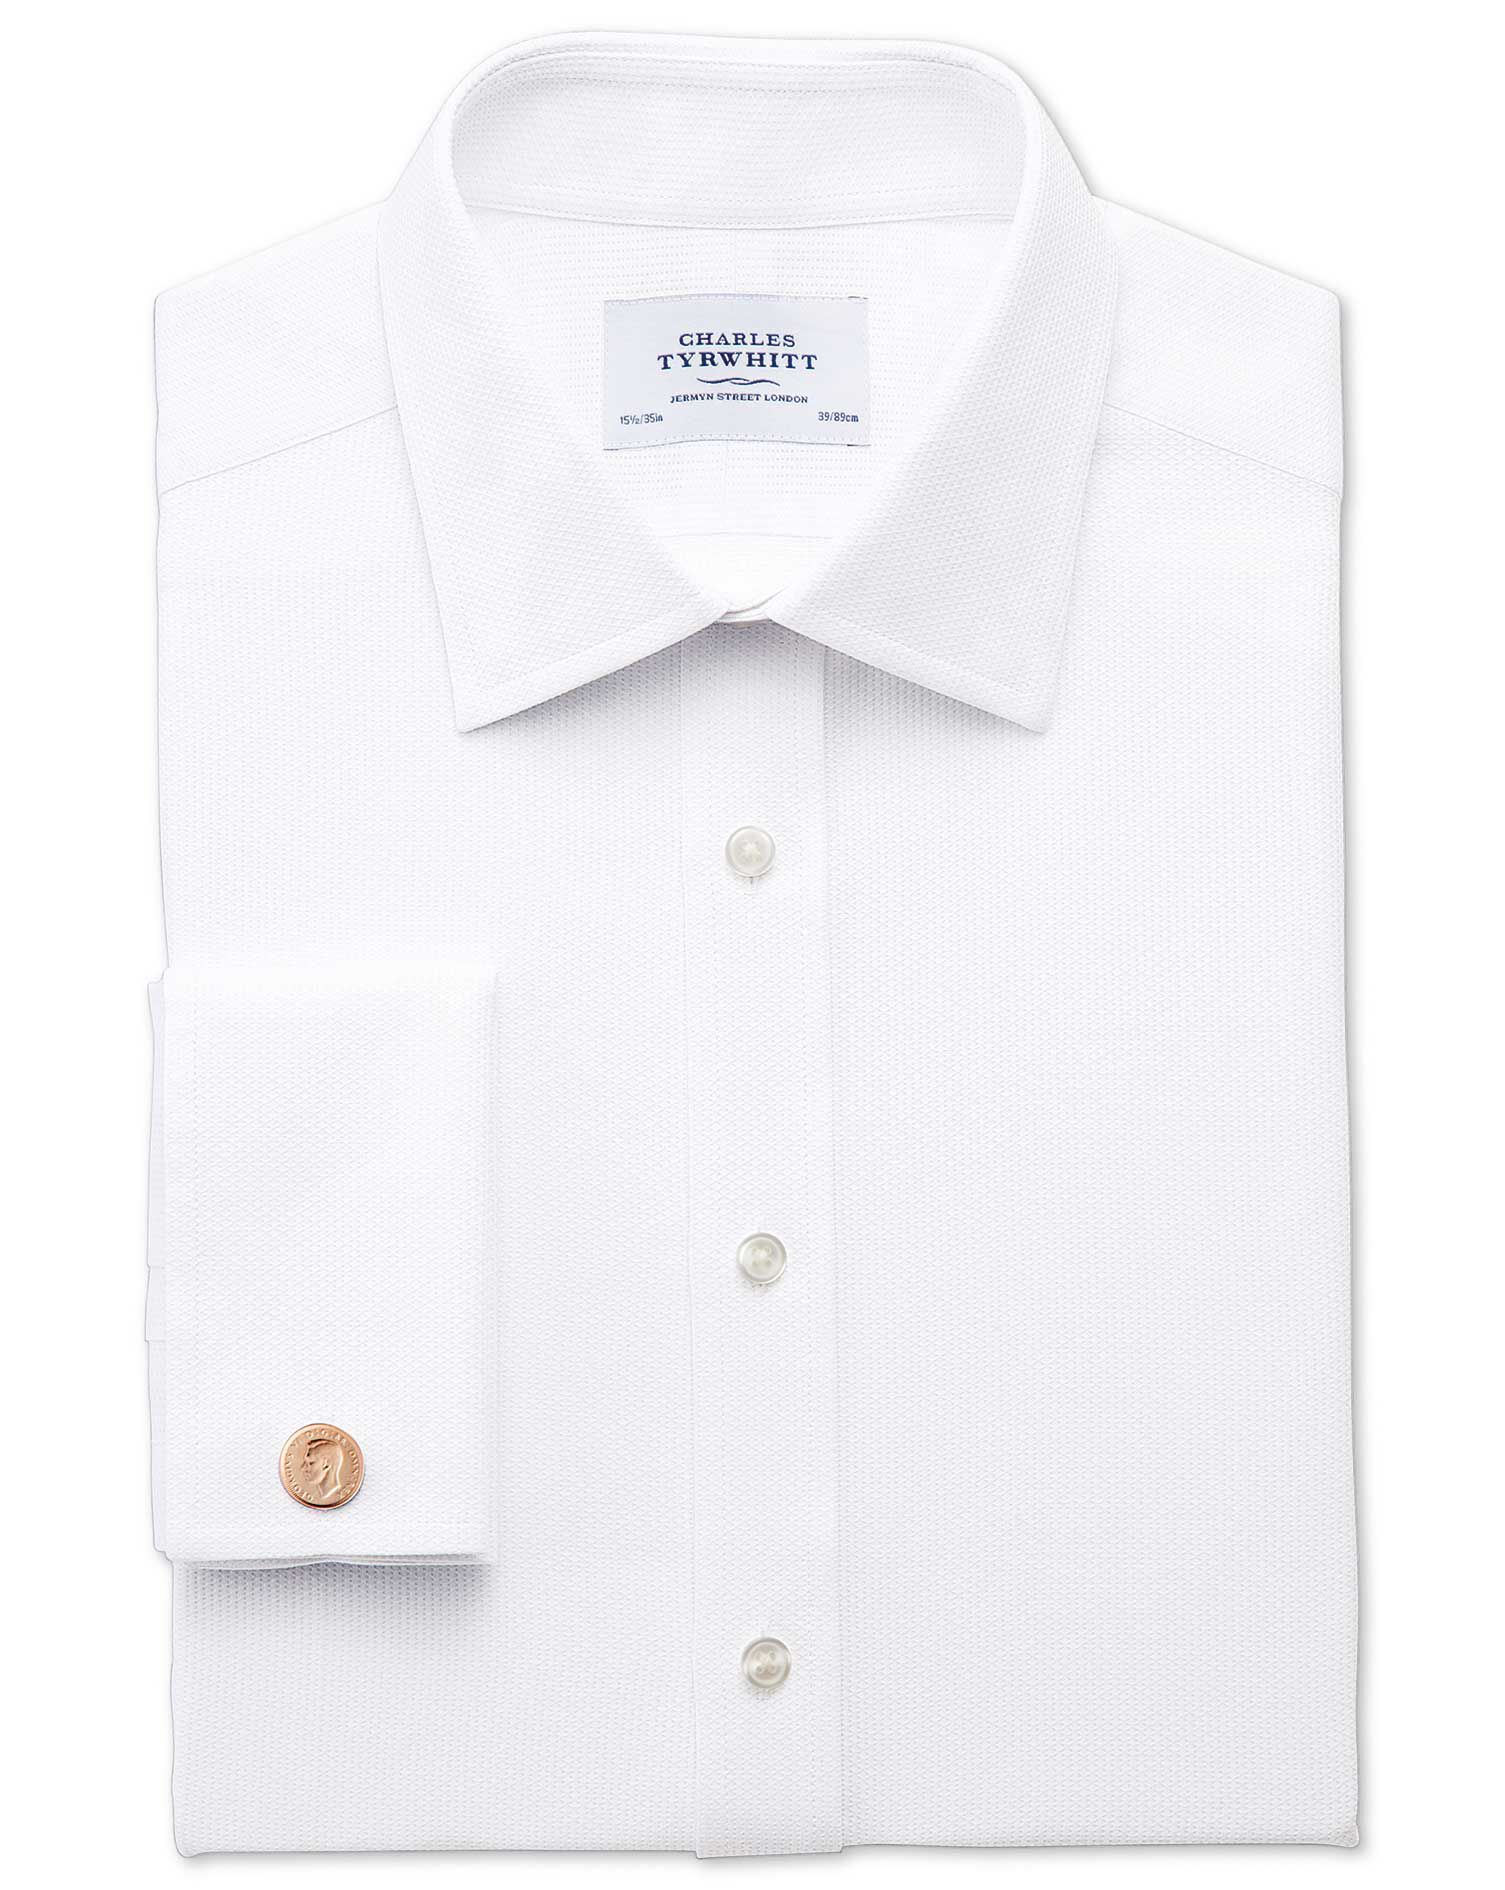 Extra Slim Fit Egyptian Cotton Diamond Texture White Formal Shirt Single Cuff Size 16.5/35 by Charle